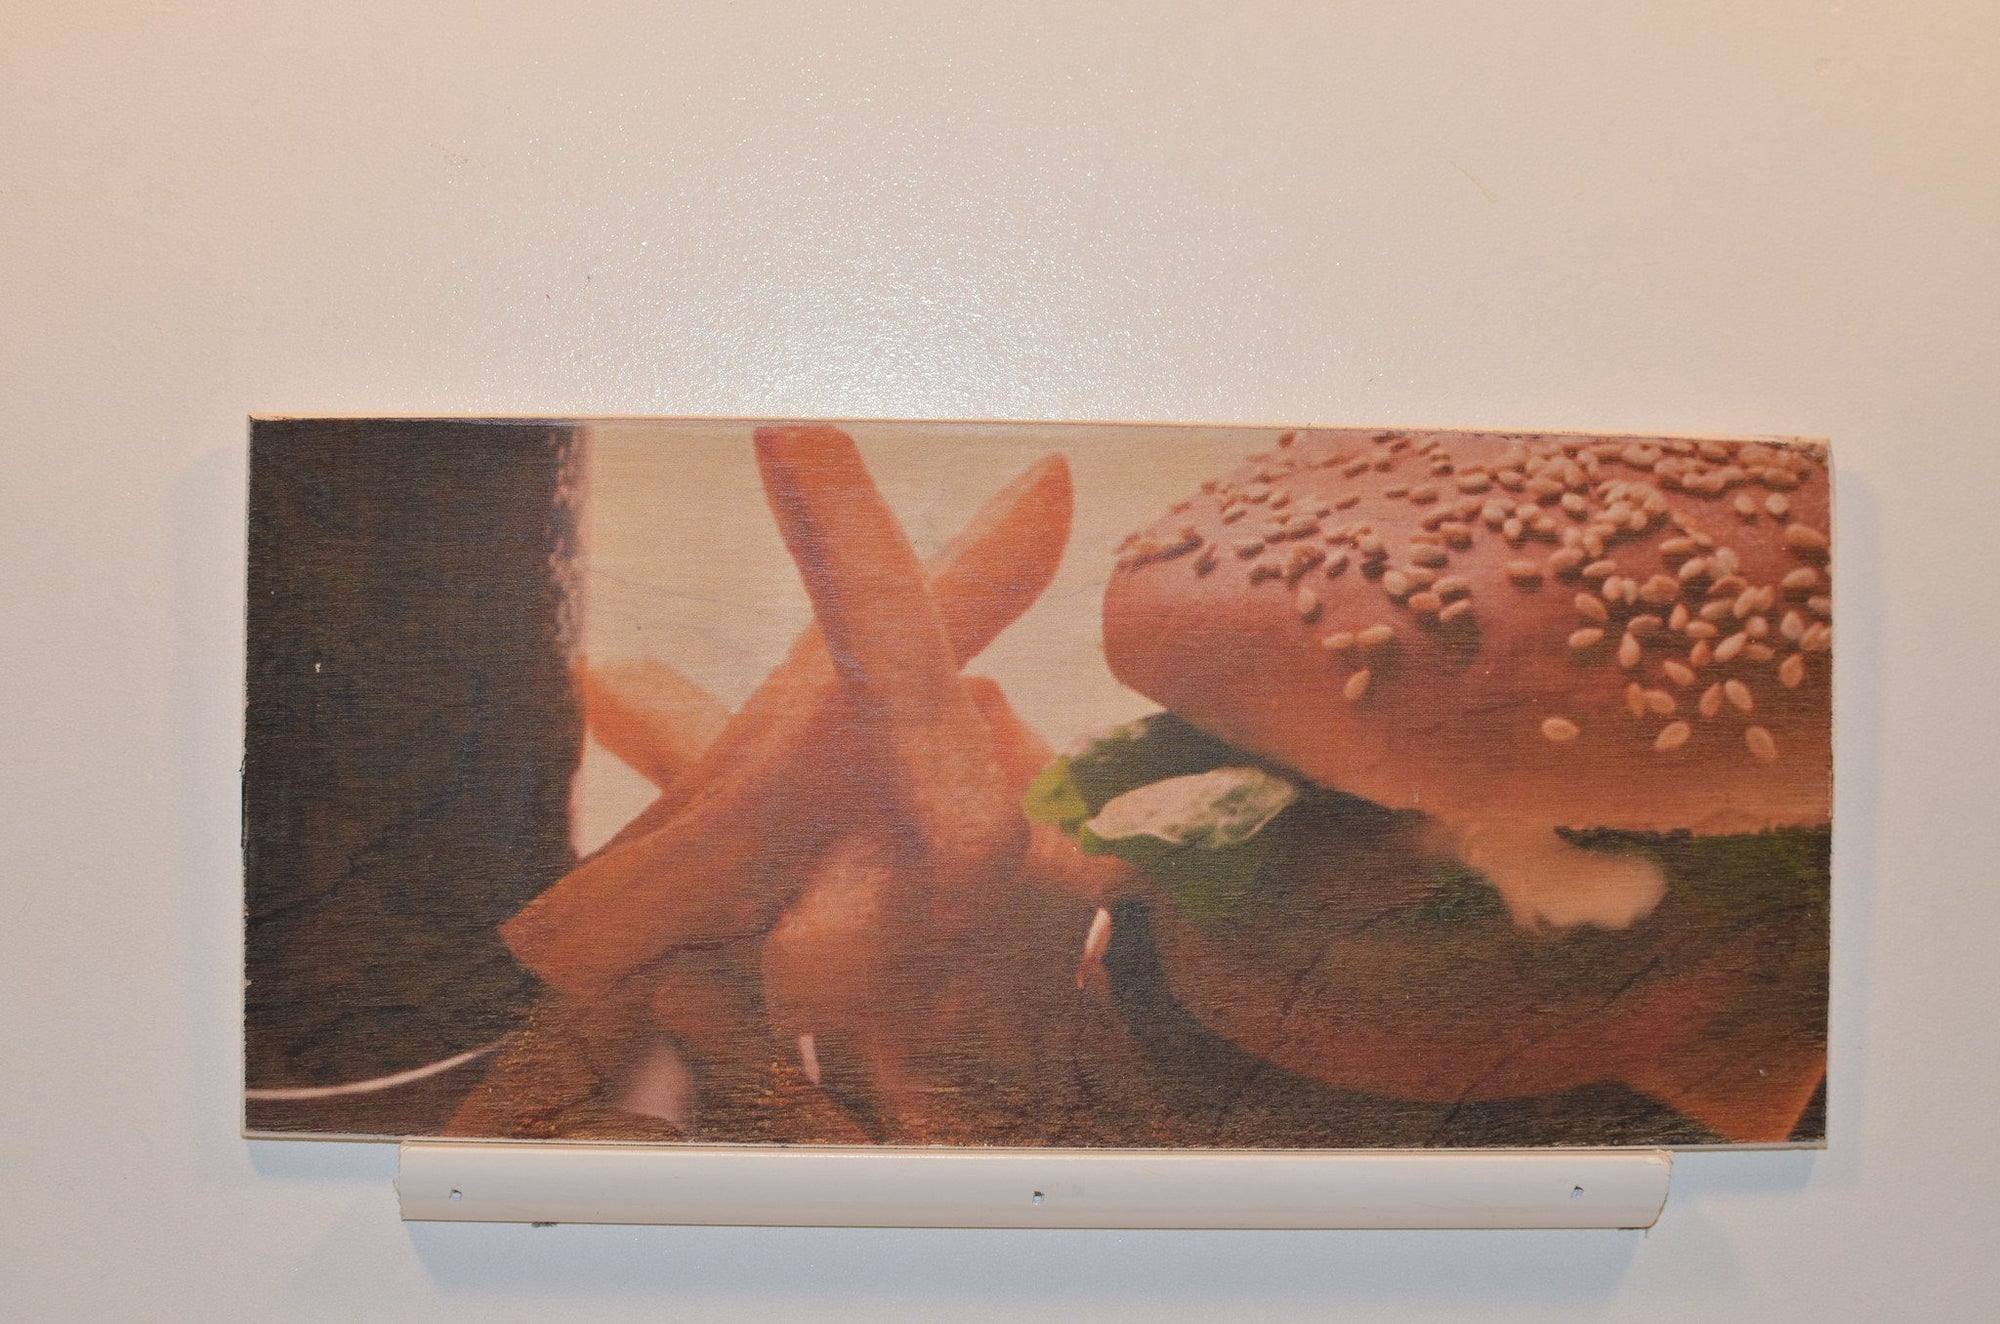 Wooden Wall Sign 10x5 - C001 - Cheeseburger and Fries - Wall Sign - Wicked Good Candle and Decor - 1